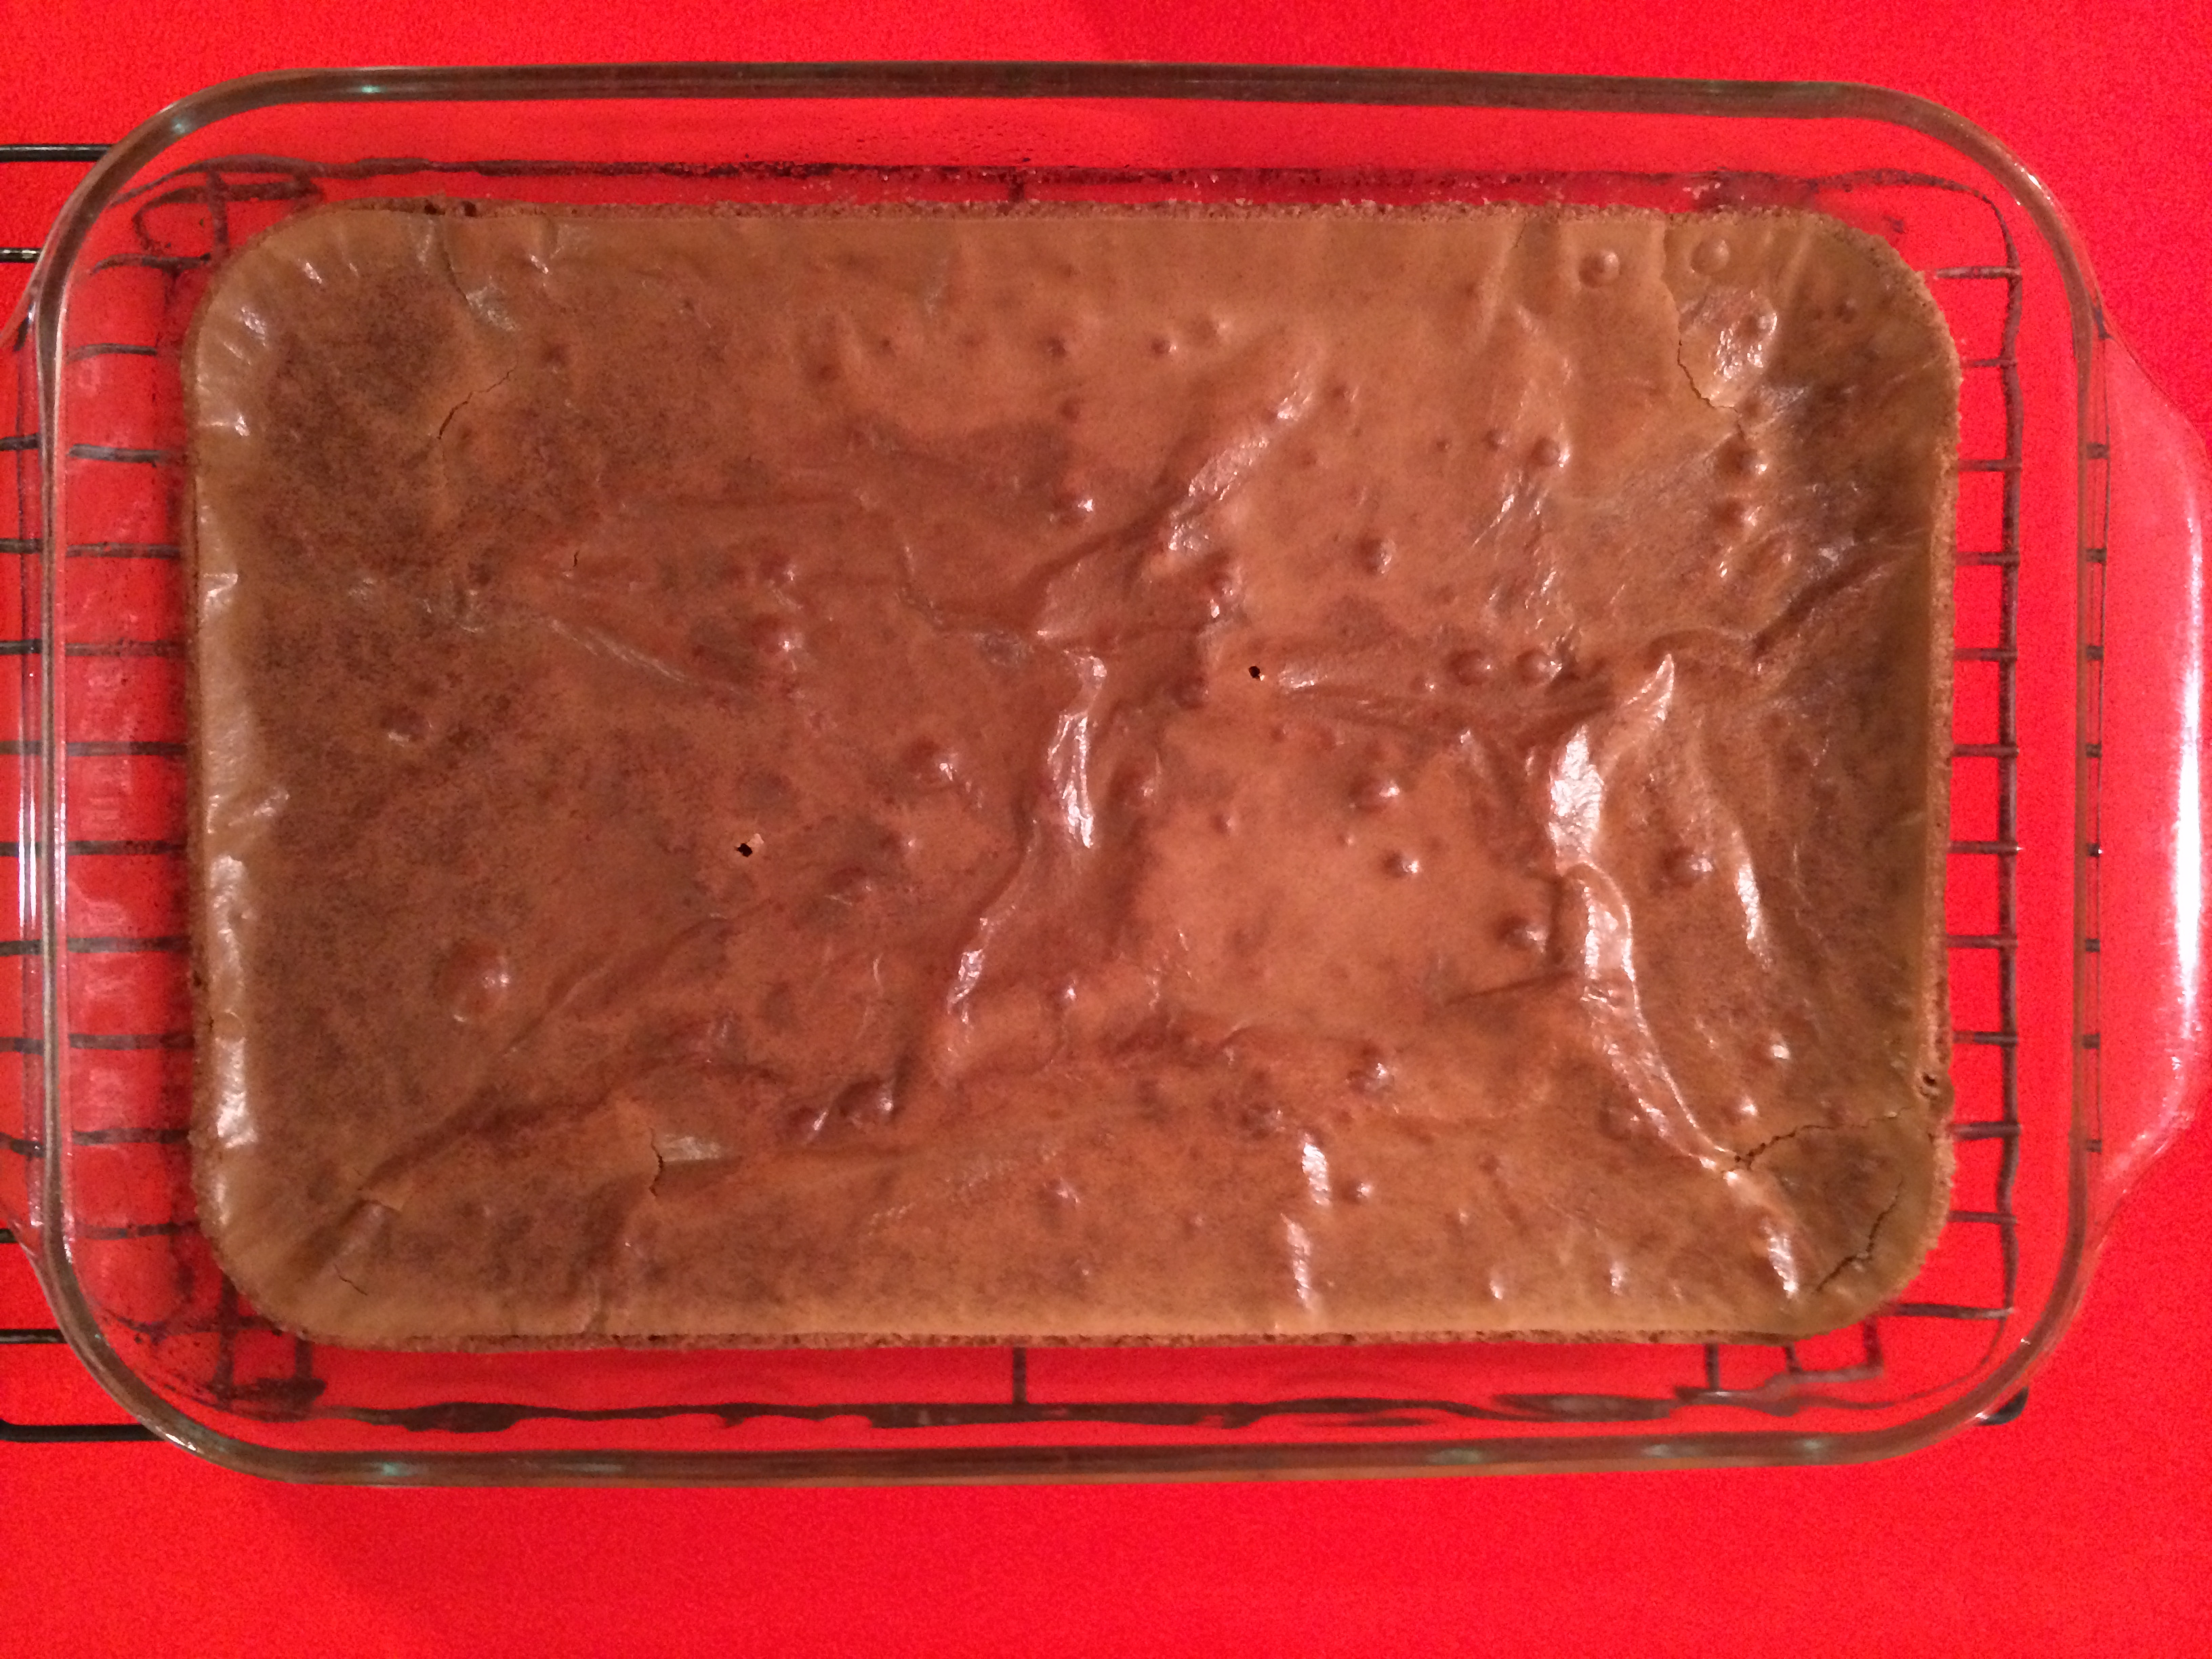 Brownie clipart pan brownie. Discovering numerator and denominator